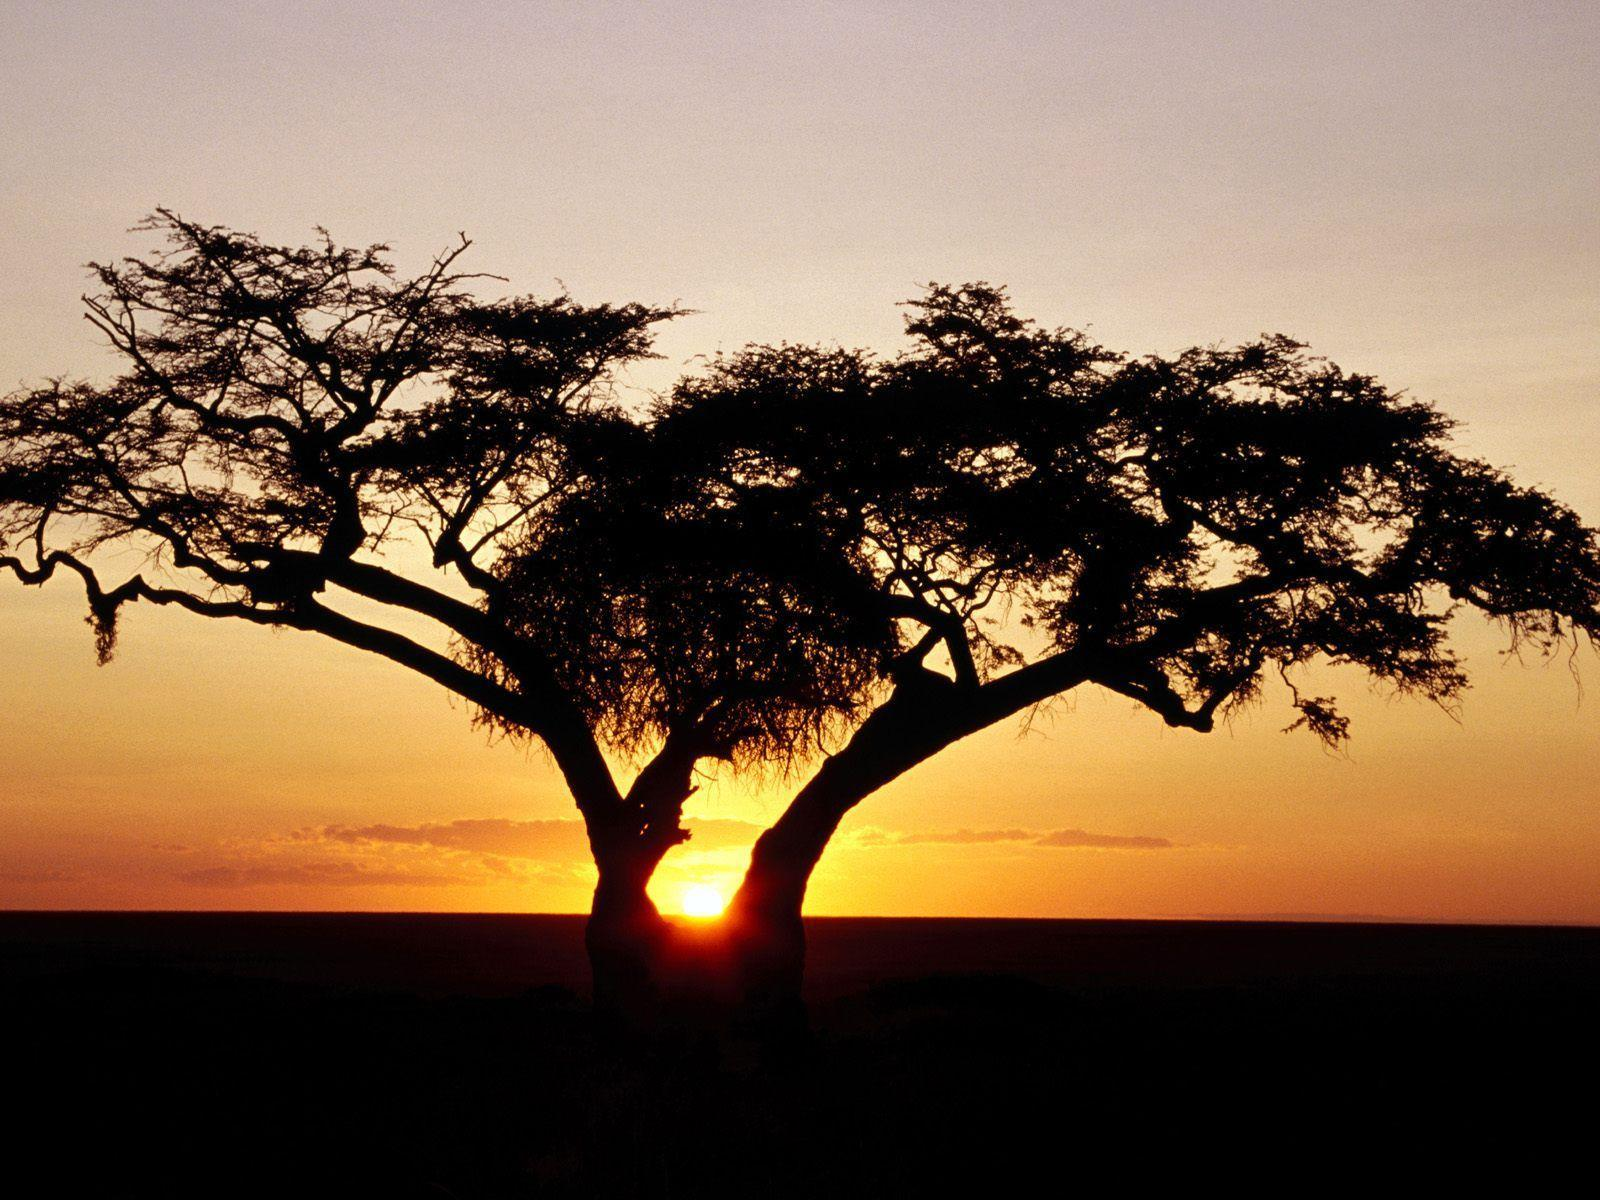 Sunrise, Africa desktop wallpaper « Desktopia.